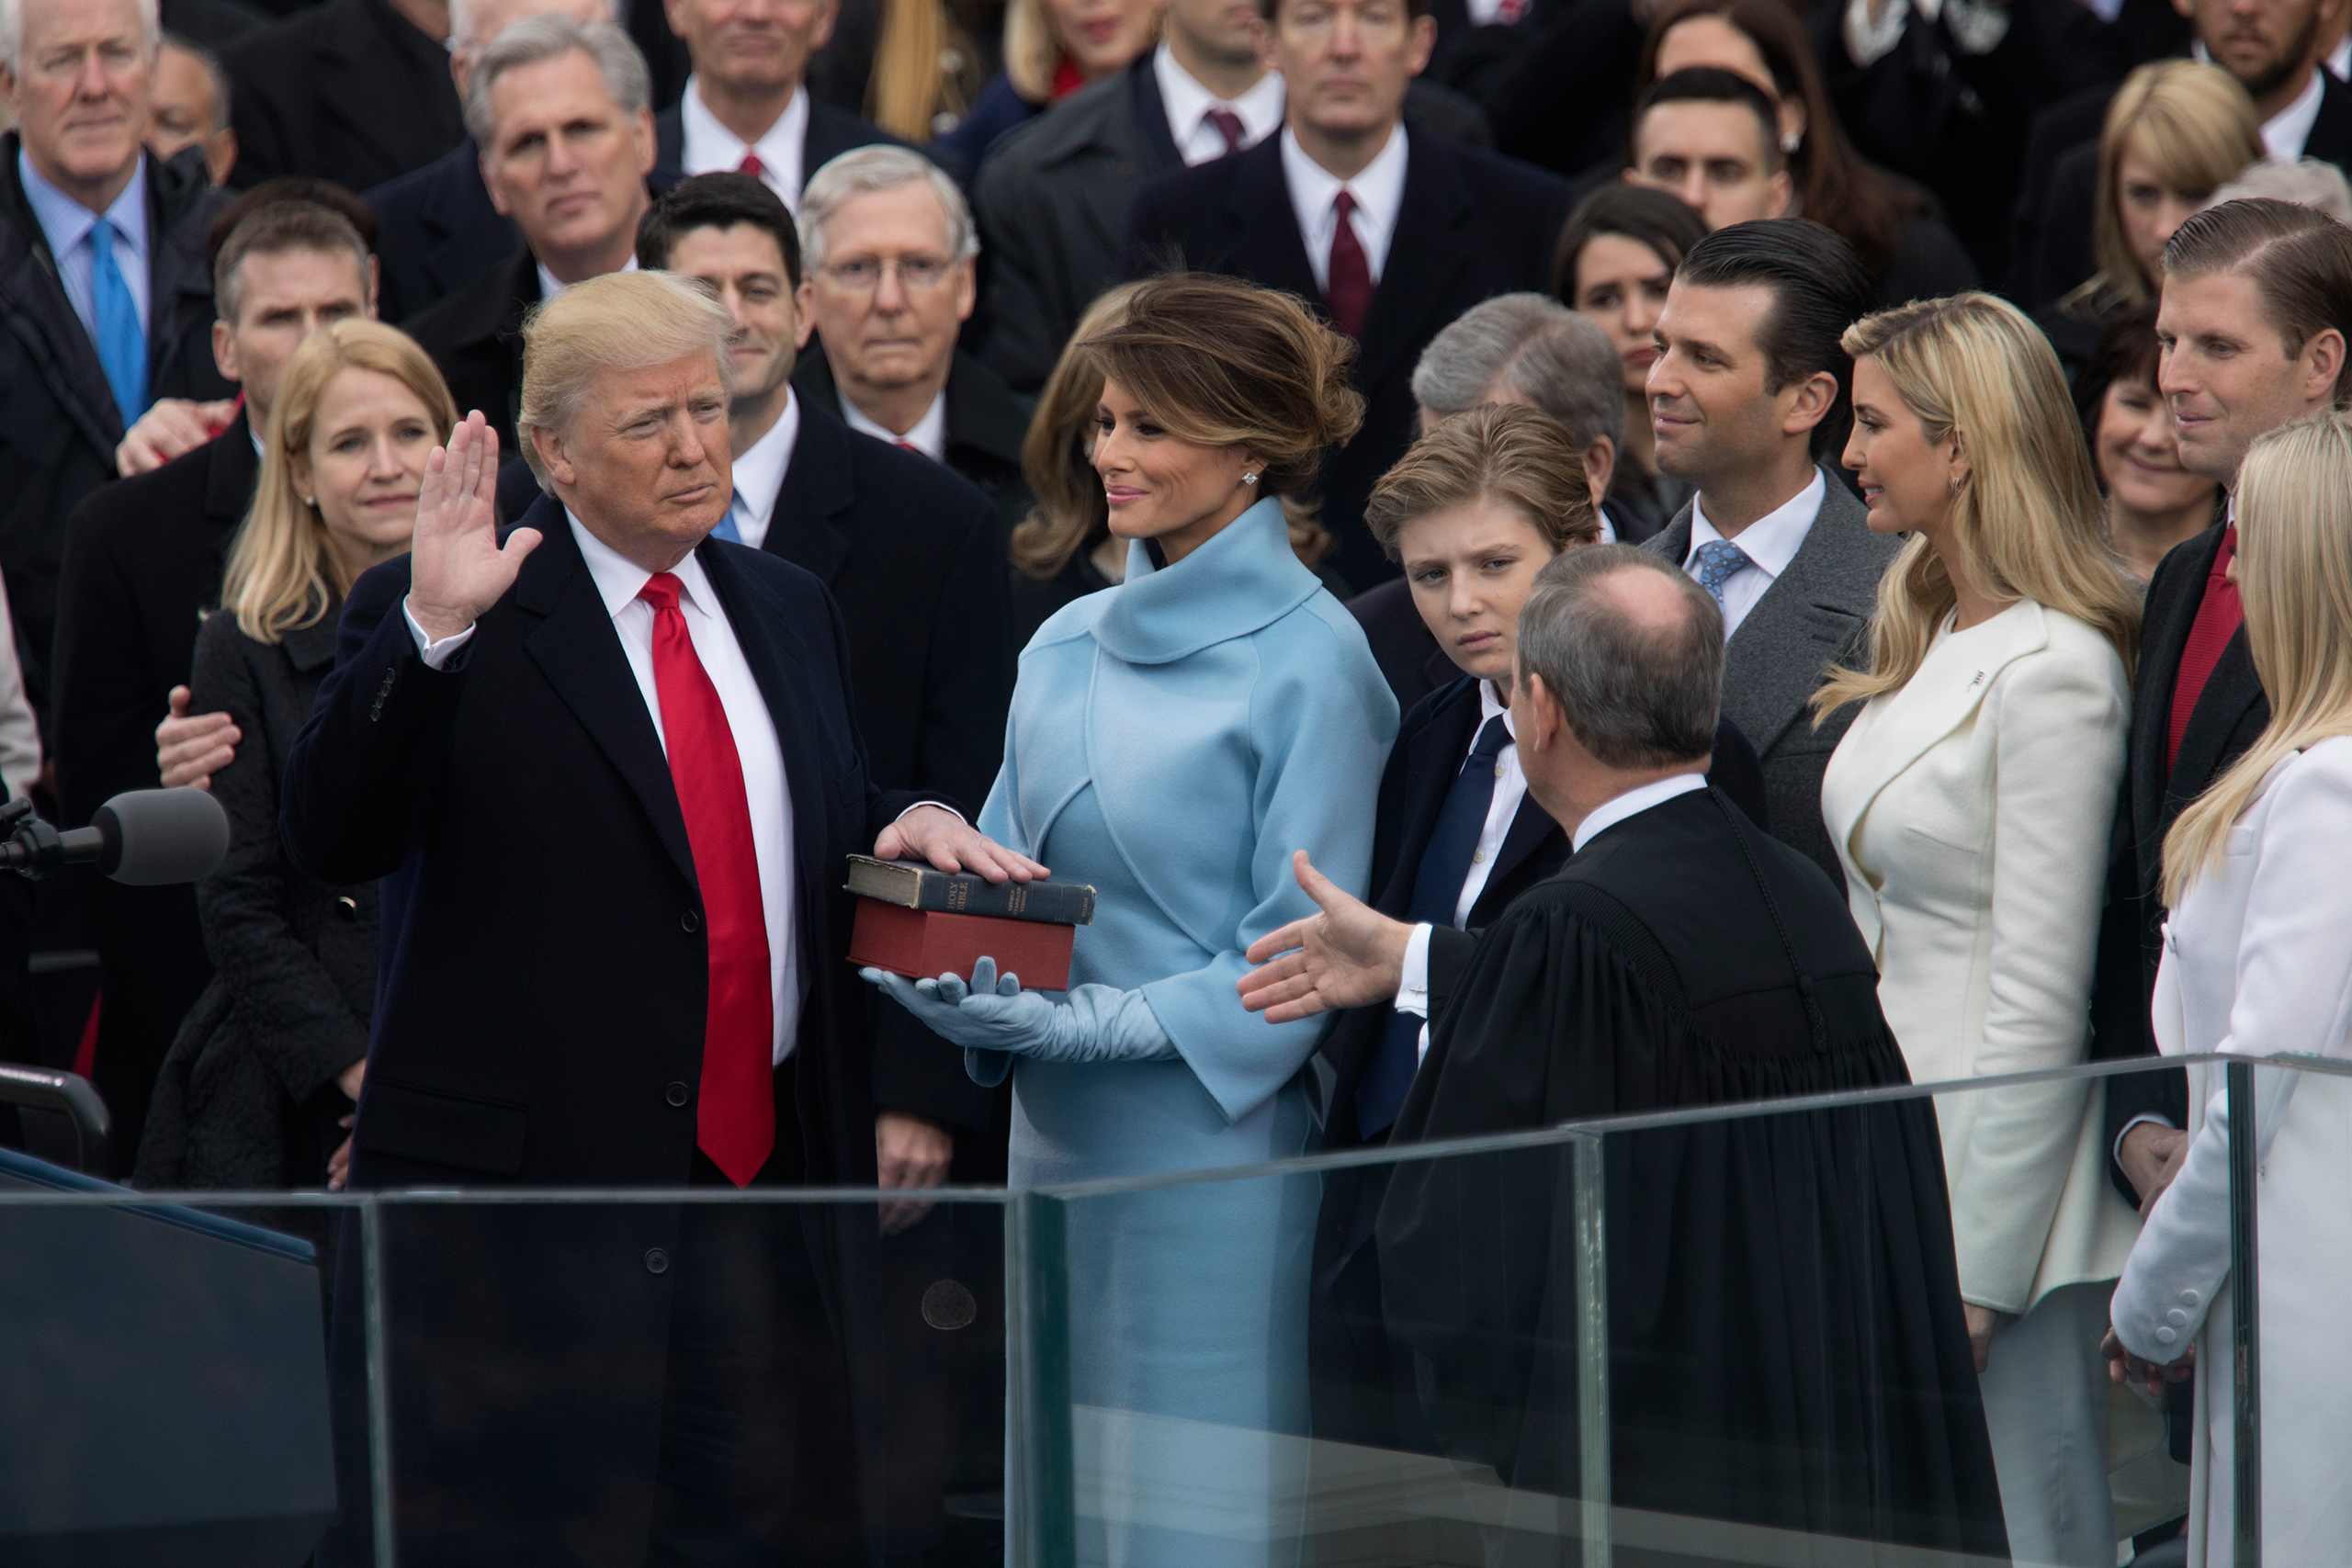 President Donald Trump takes the oath of office alongside his wife, Melania, at the Capitol in Washington on Jan. 20, 2017.